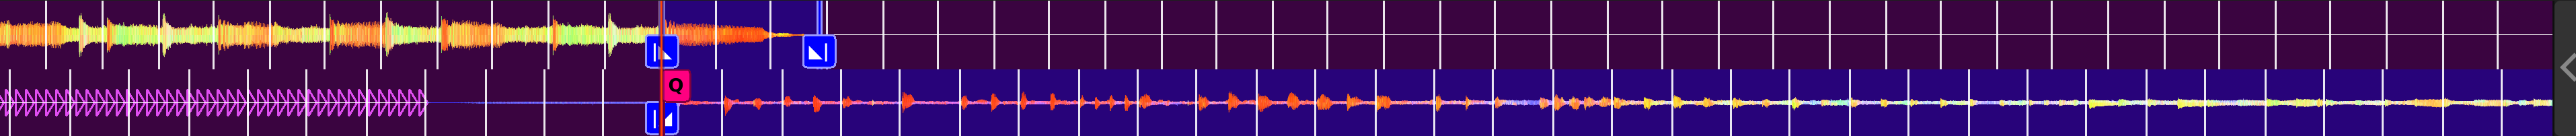 Two tracks' waveforms with the starts of the outro and intro aligned